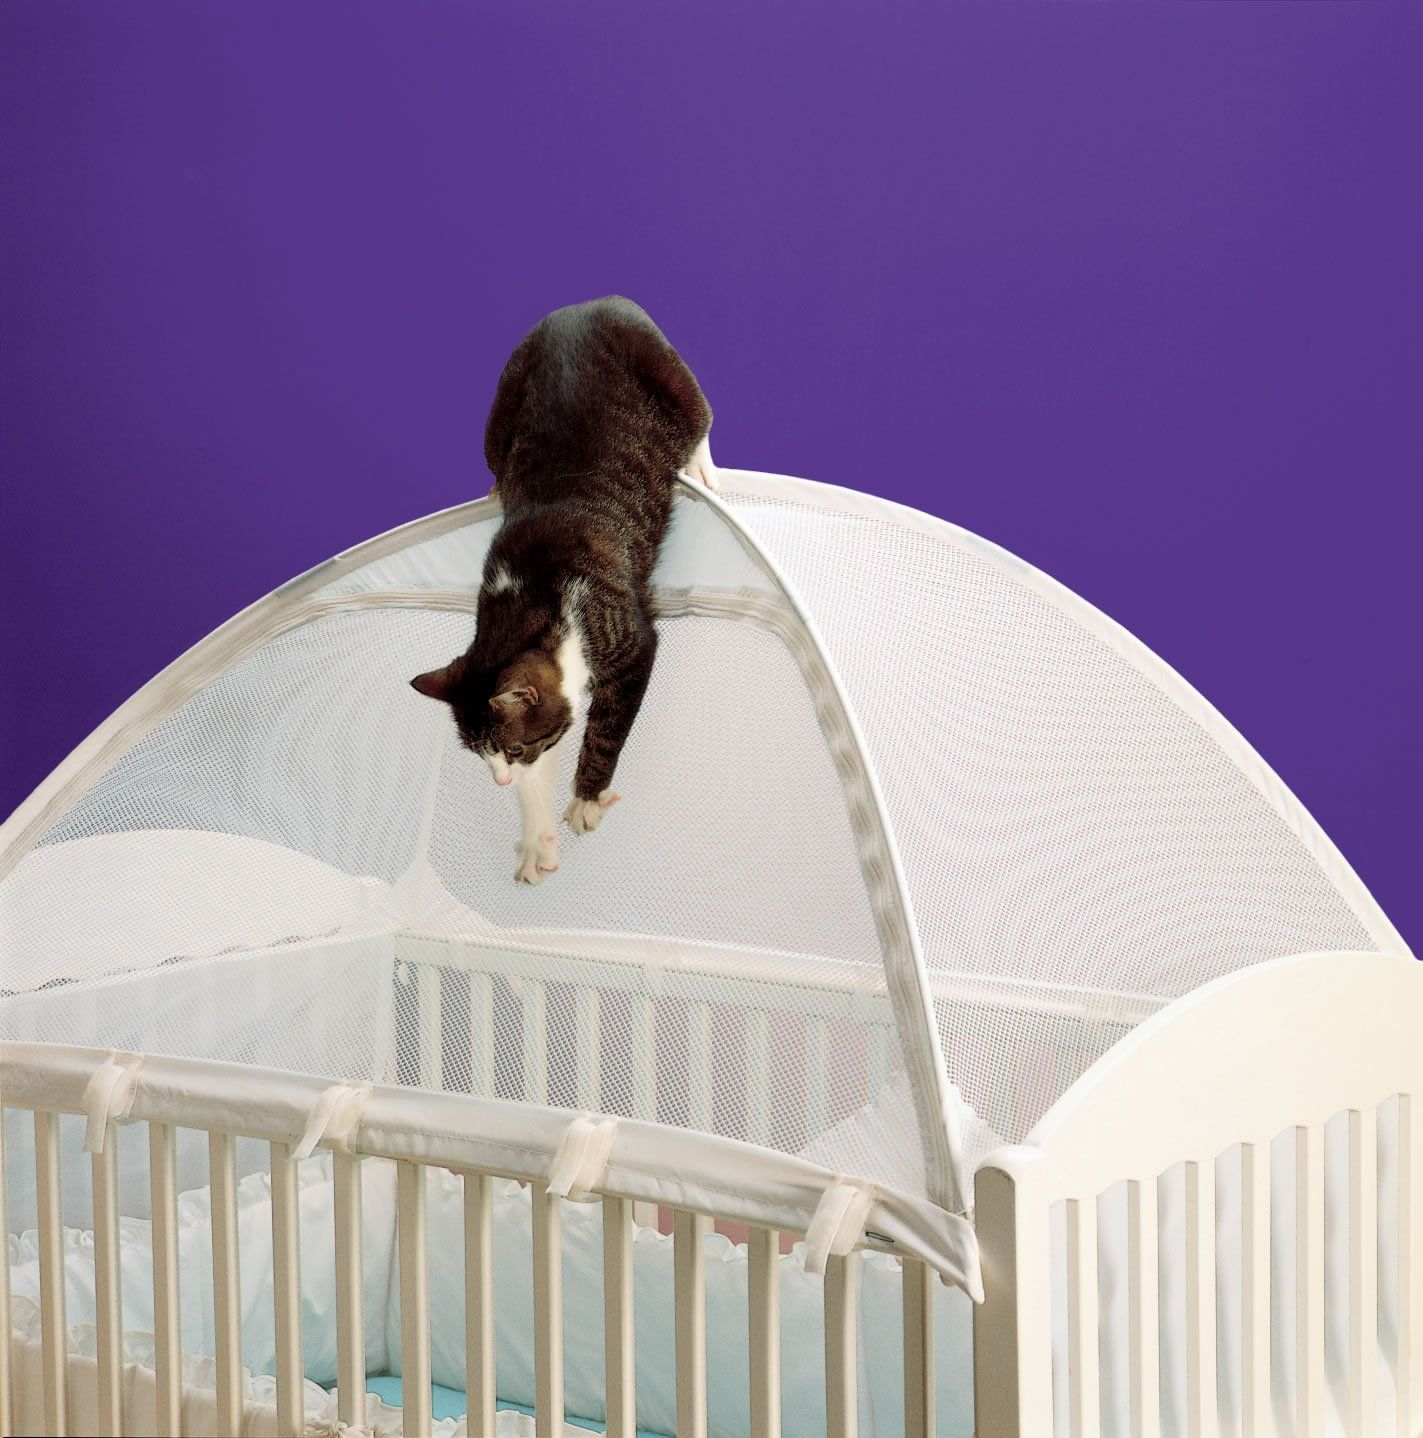 Crib tents are a solution to keeping cats out of baby beds | Exclusively Cats Veterinary & Crib tents are a solution to keeping cats out of baby beds ...